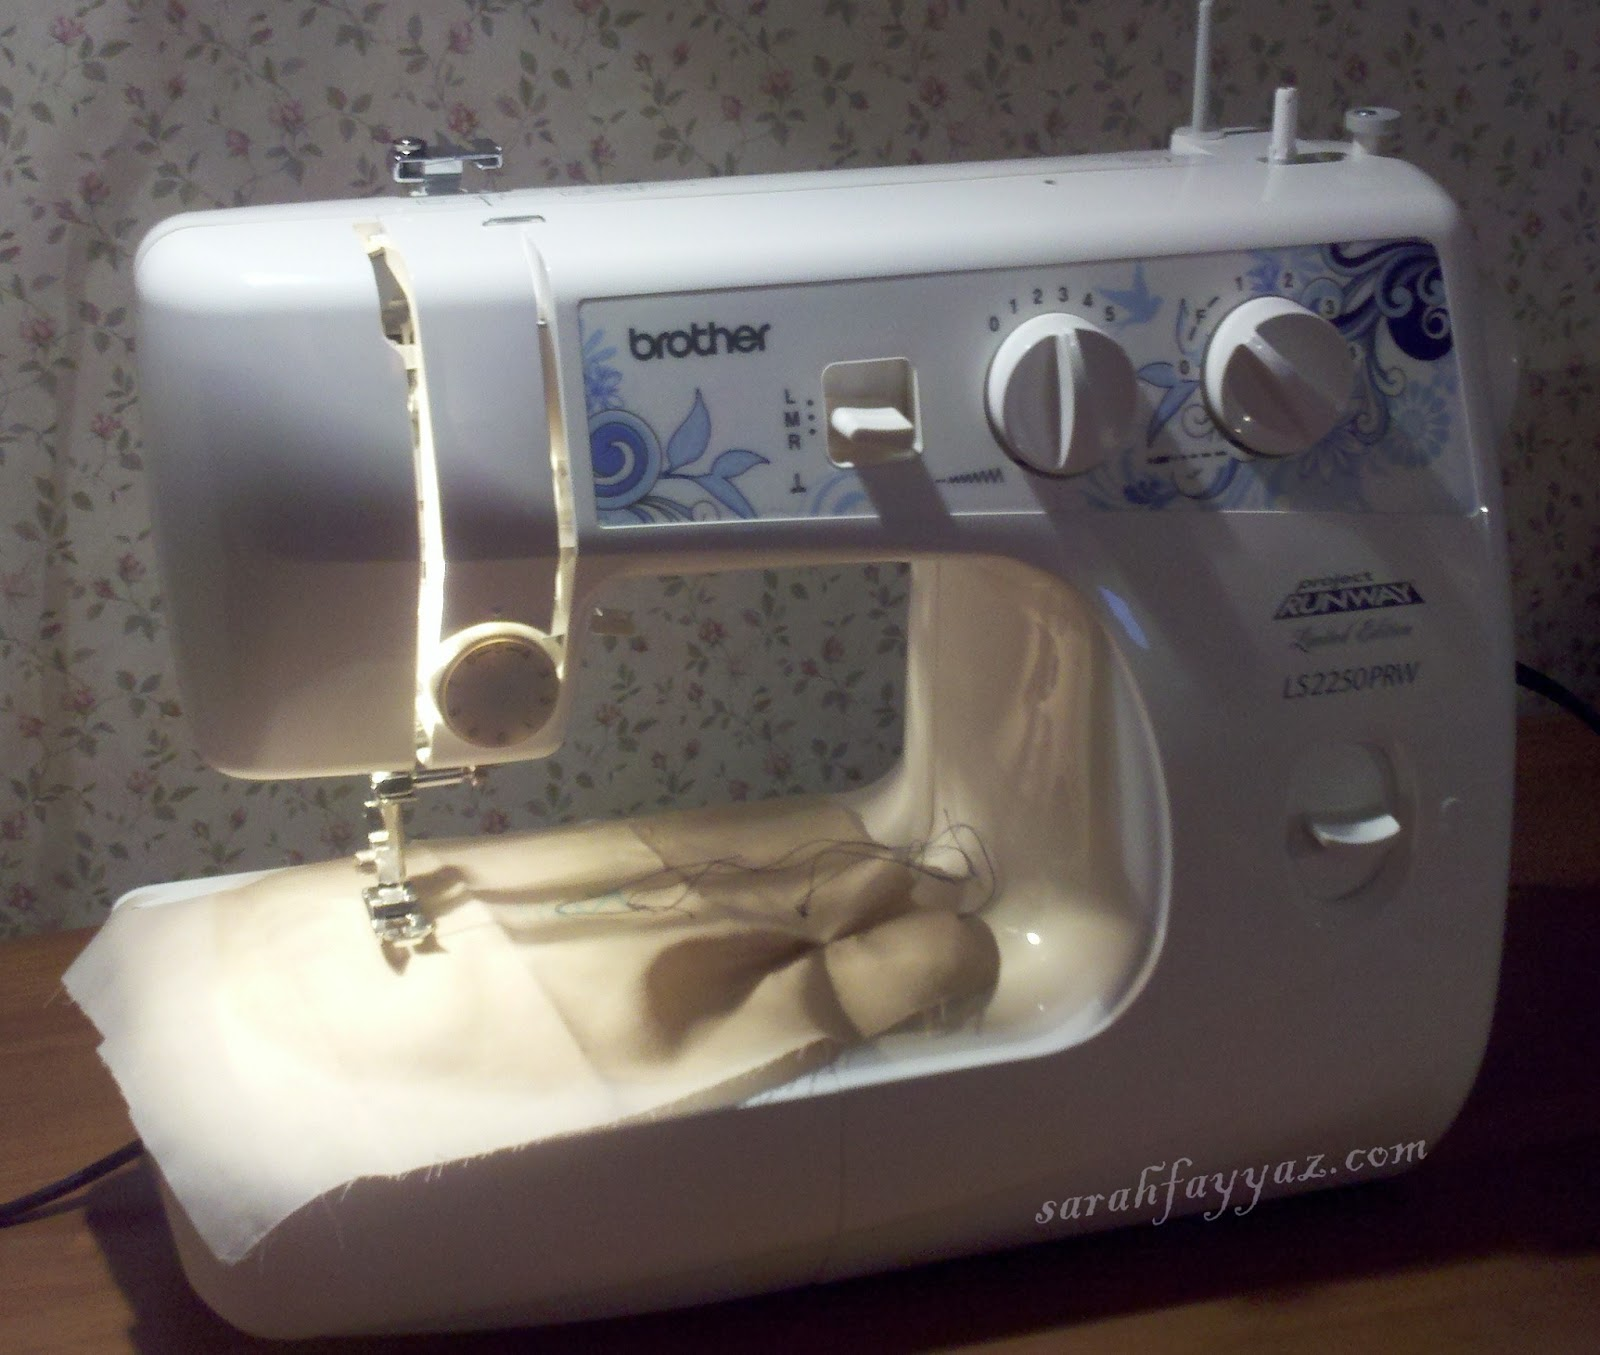 Brother project runway sewing machine ls2250prw